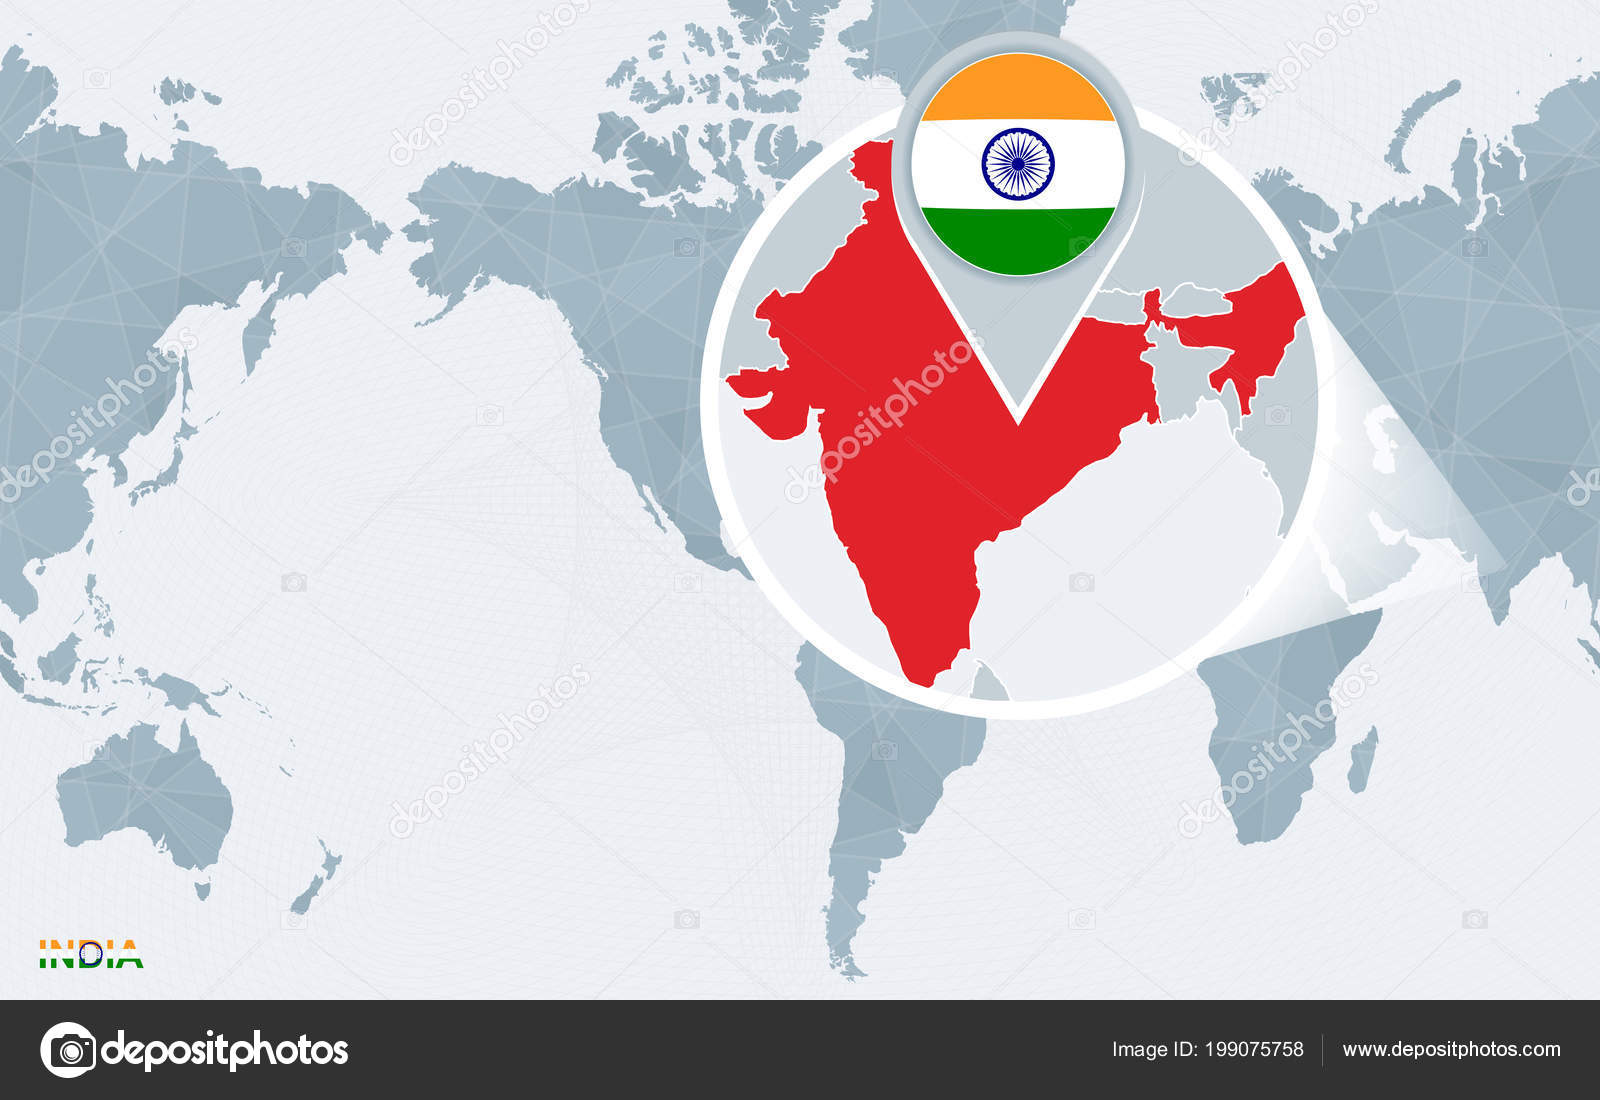 World map centered america magnified india blue flag map india world map centered america magnified india blue flag map india stock vector gumiabroncs Choice Image